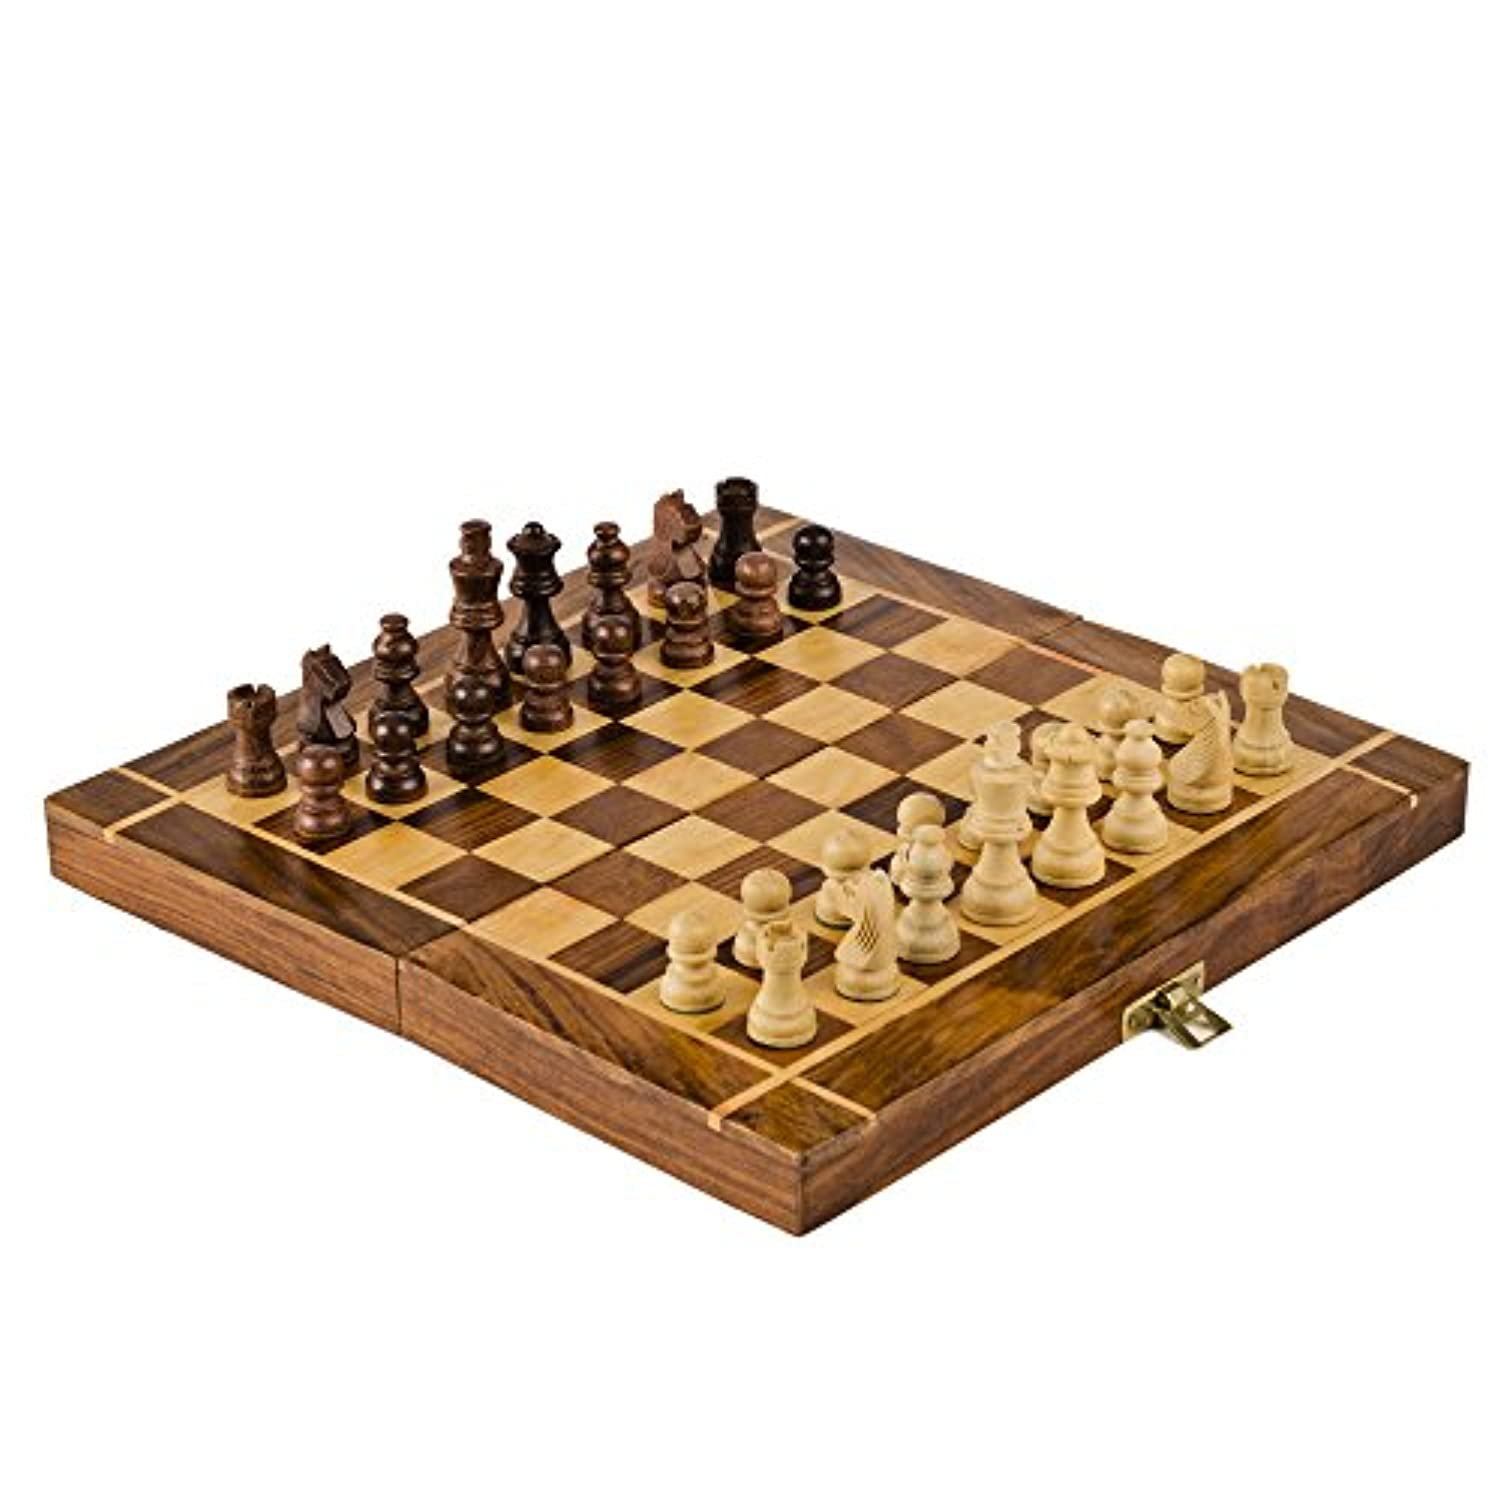 Rusticity Wood Magnetic Chess Set with Folding Board and Chess Pieces Handmade (30cm x 30cm)